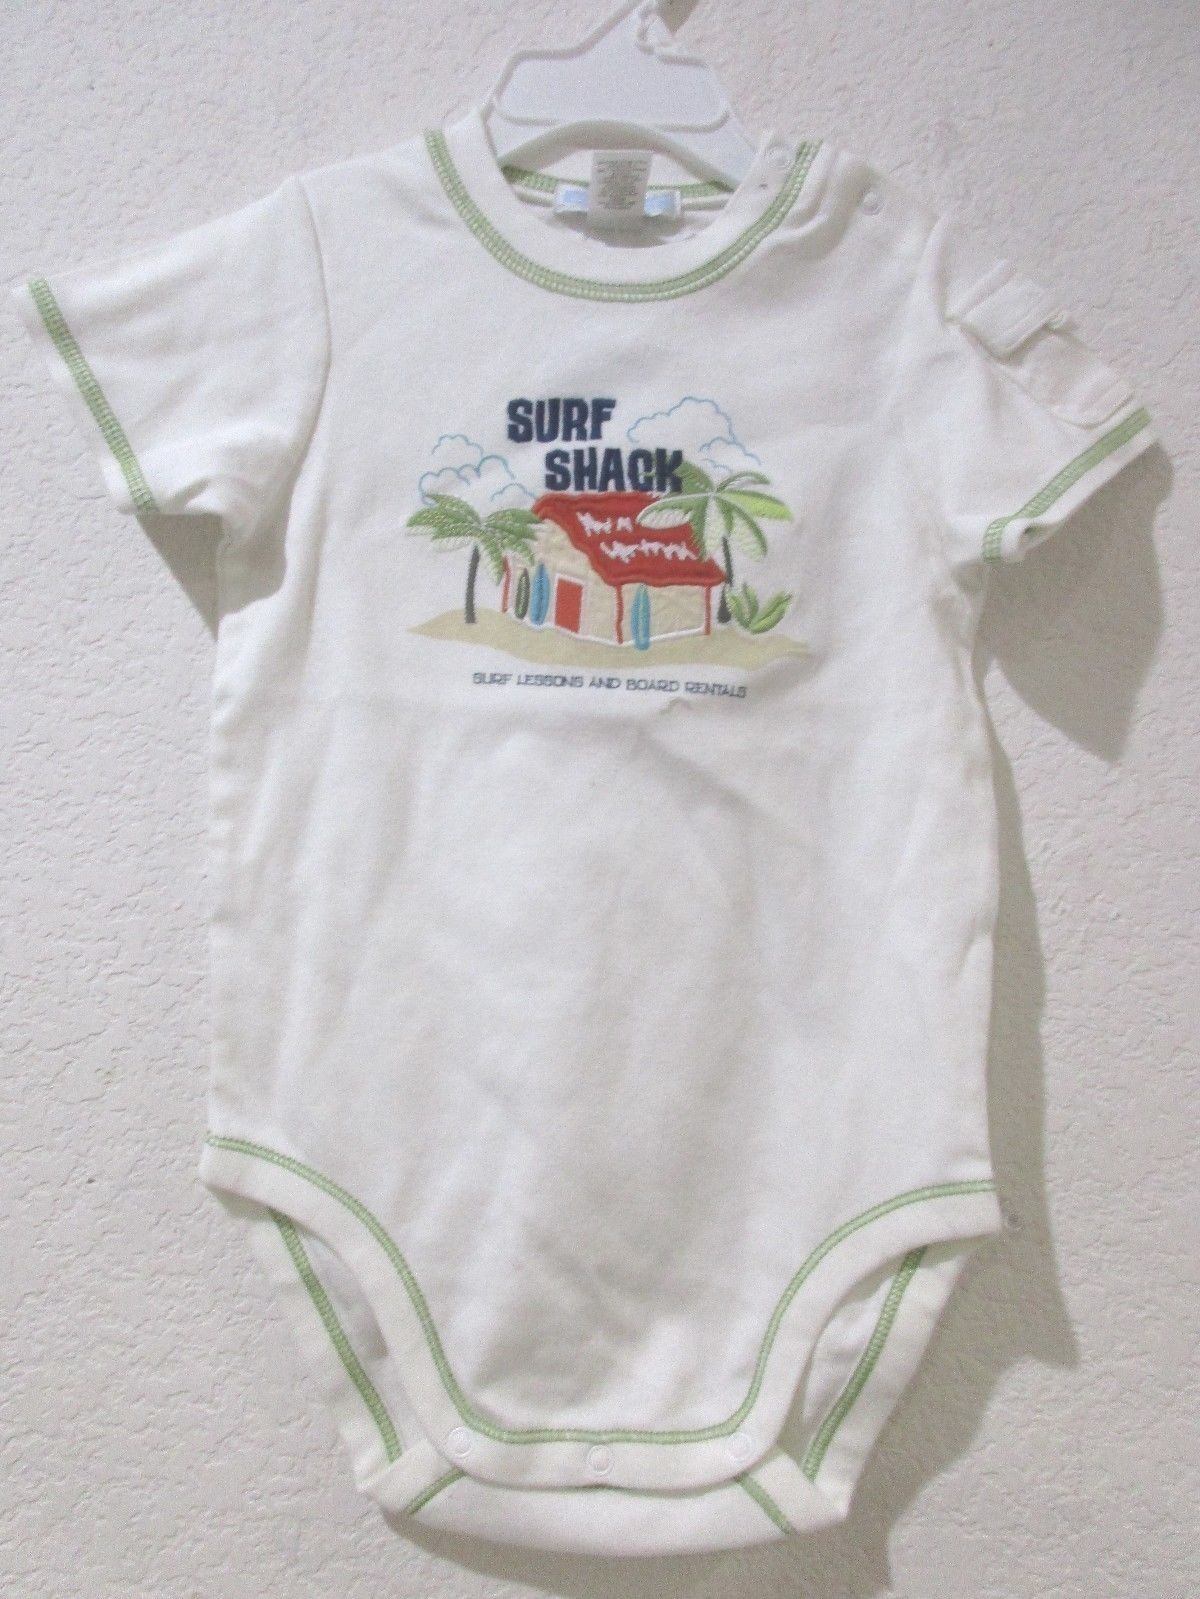 0f3f6dc81ee9 NWT Janie and Jack Boys SURF SHACK White Bodysuit Size 2T -  19.99